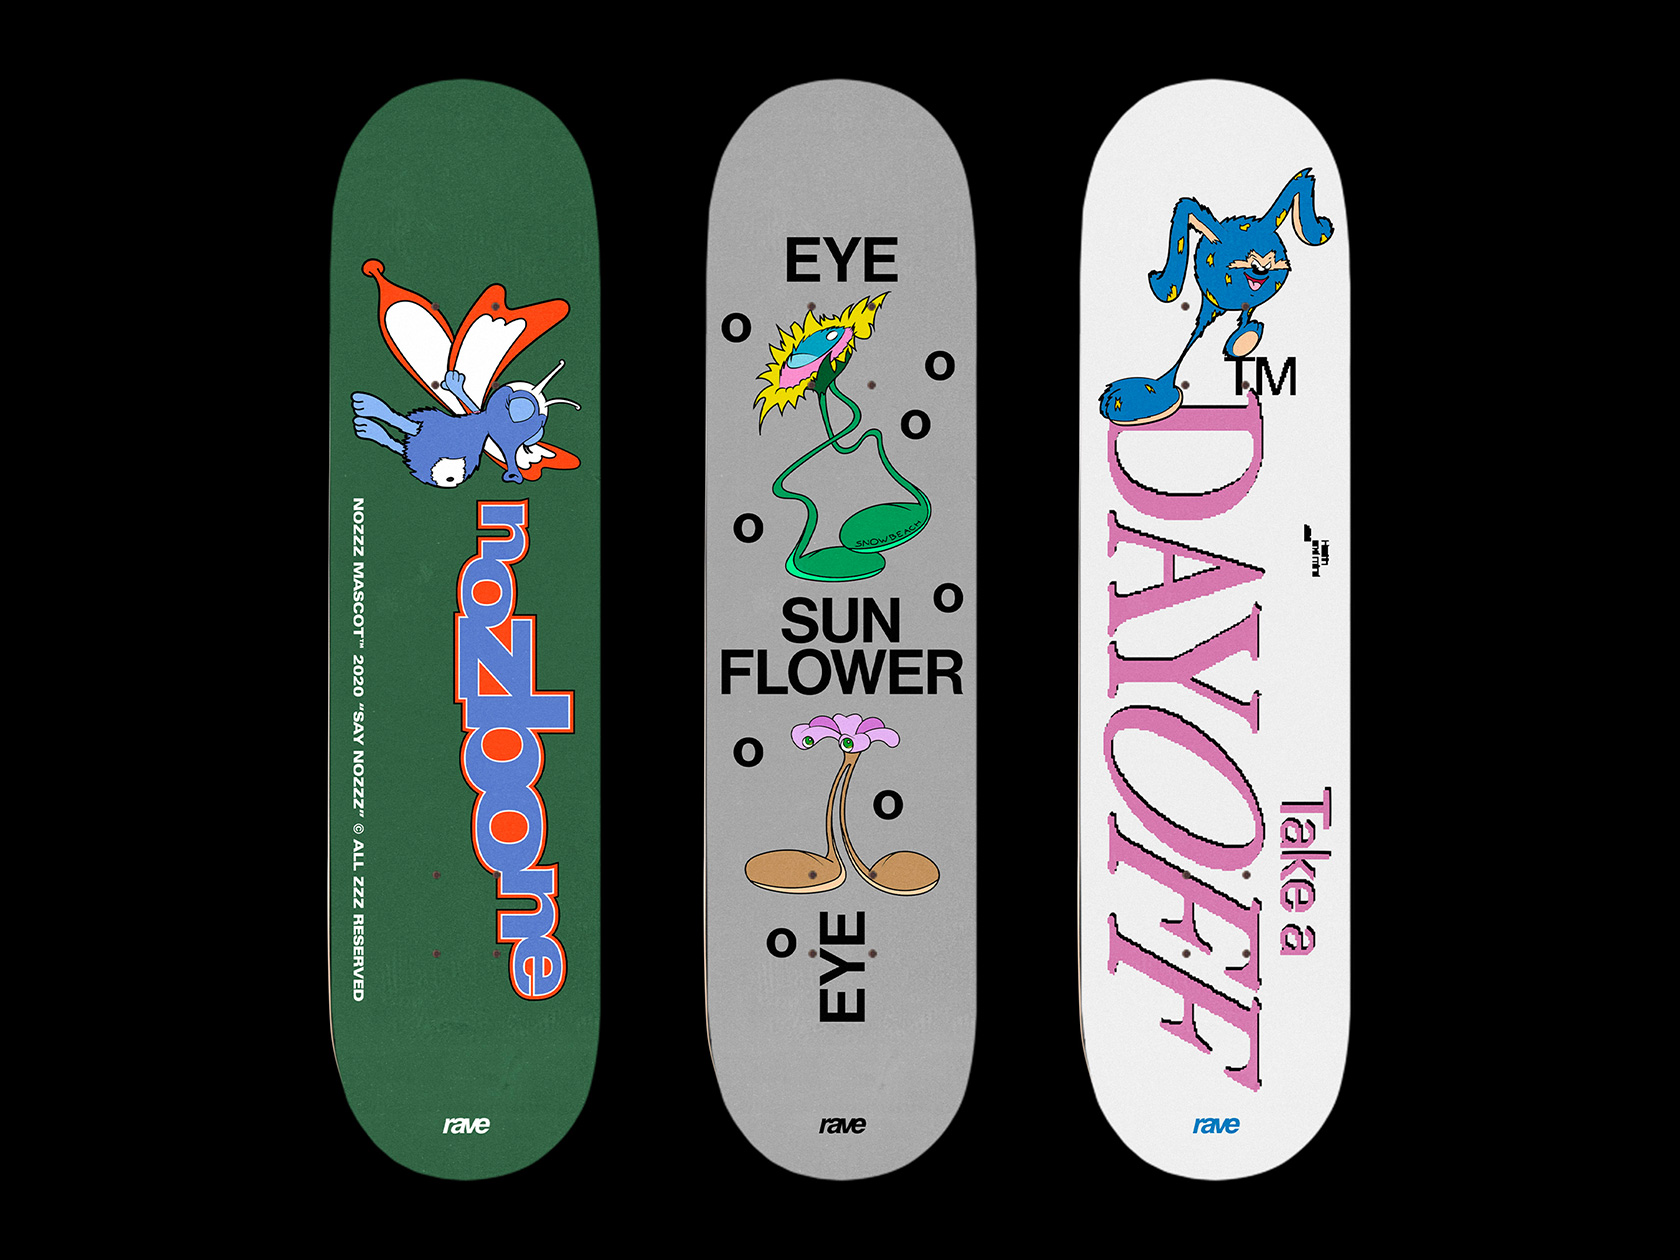 00 collide24 Camille Bourdon Arthur Nabi - Camille Bourdon and Arthur Nabi's deck designs celebrate the playfulness and funkiness of skateboard culture